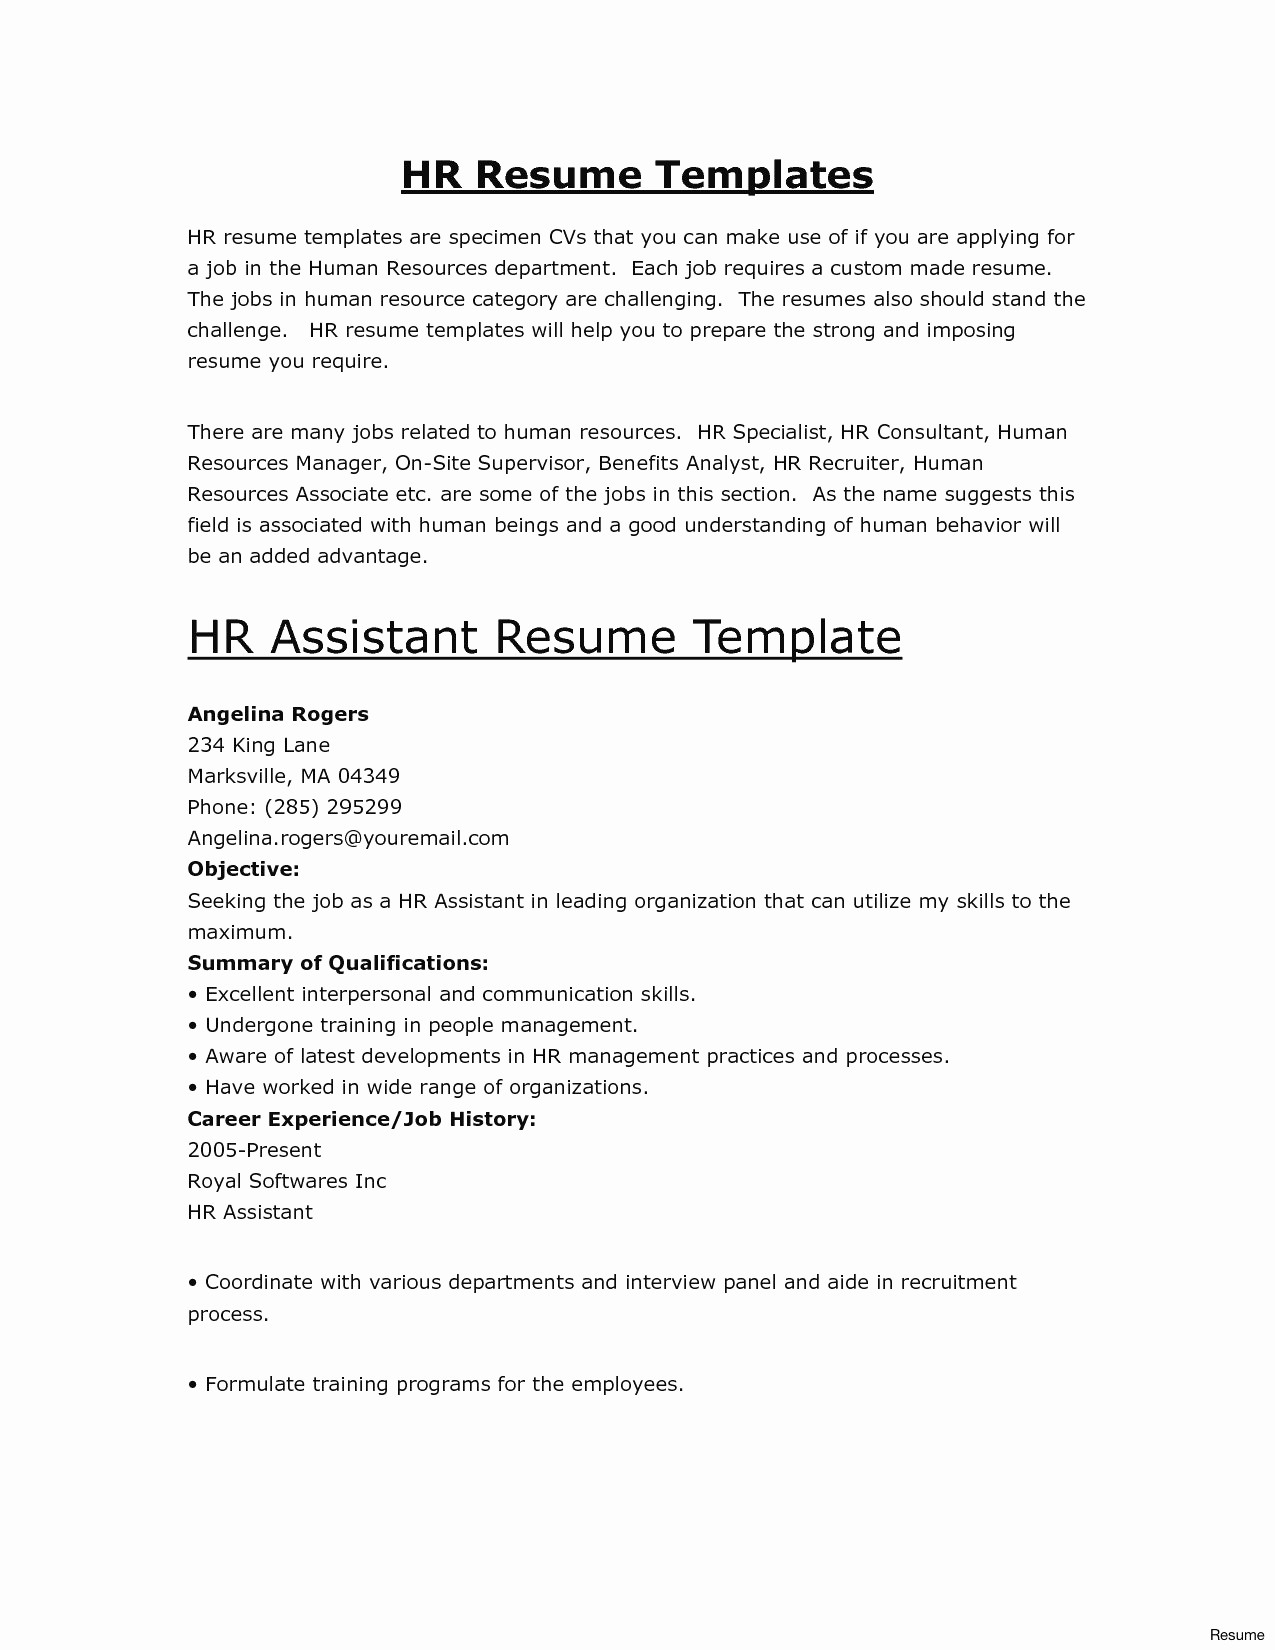 Confirmation Of Employment Letter Template - Inspirational Employment Verification Letter Template